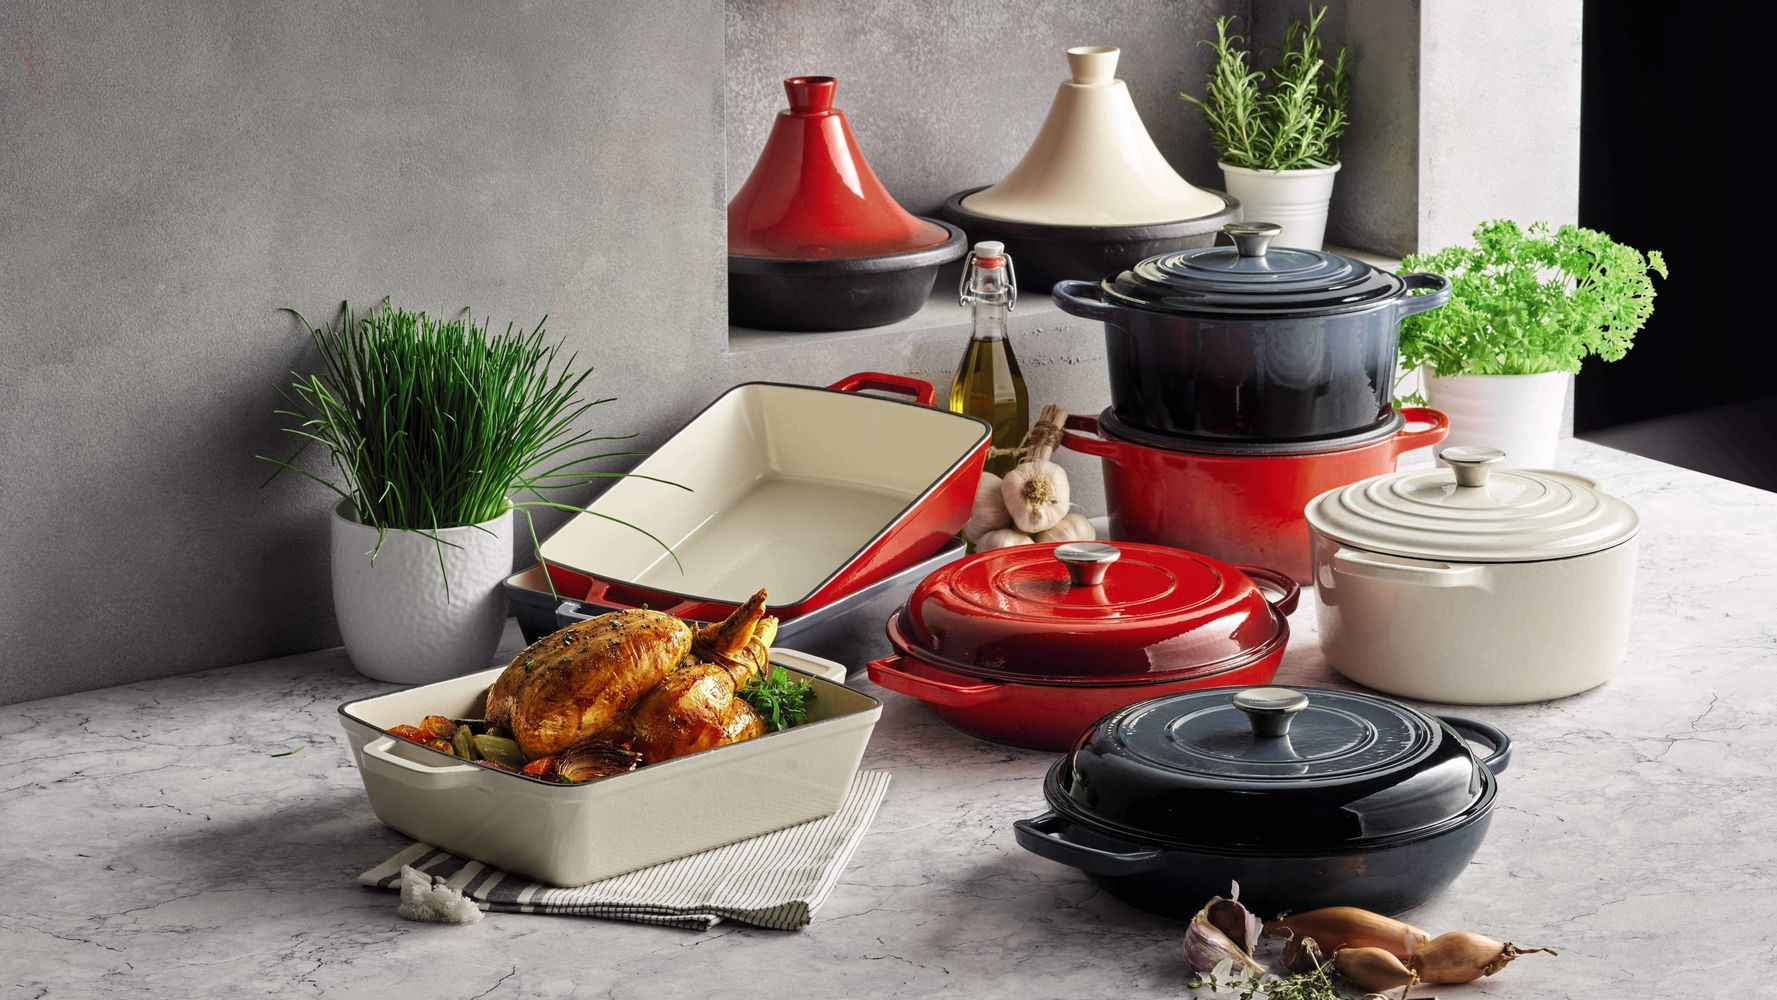 Aldi's Launching A Cast-Iron Cookware Range To Rival Le Creuset